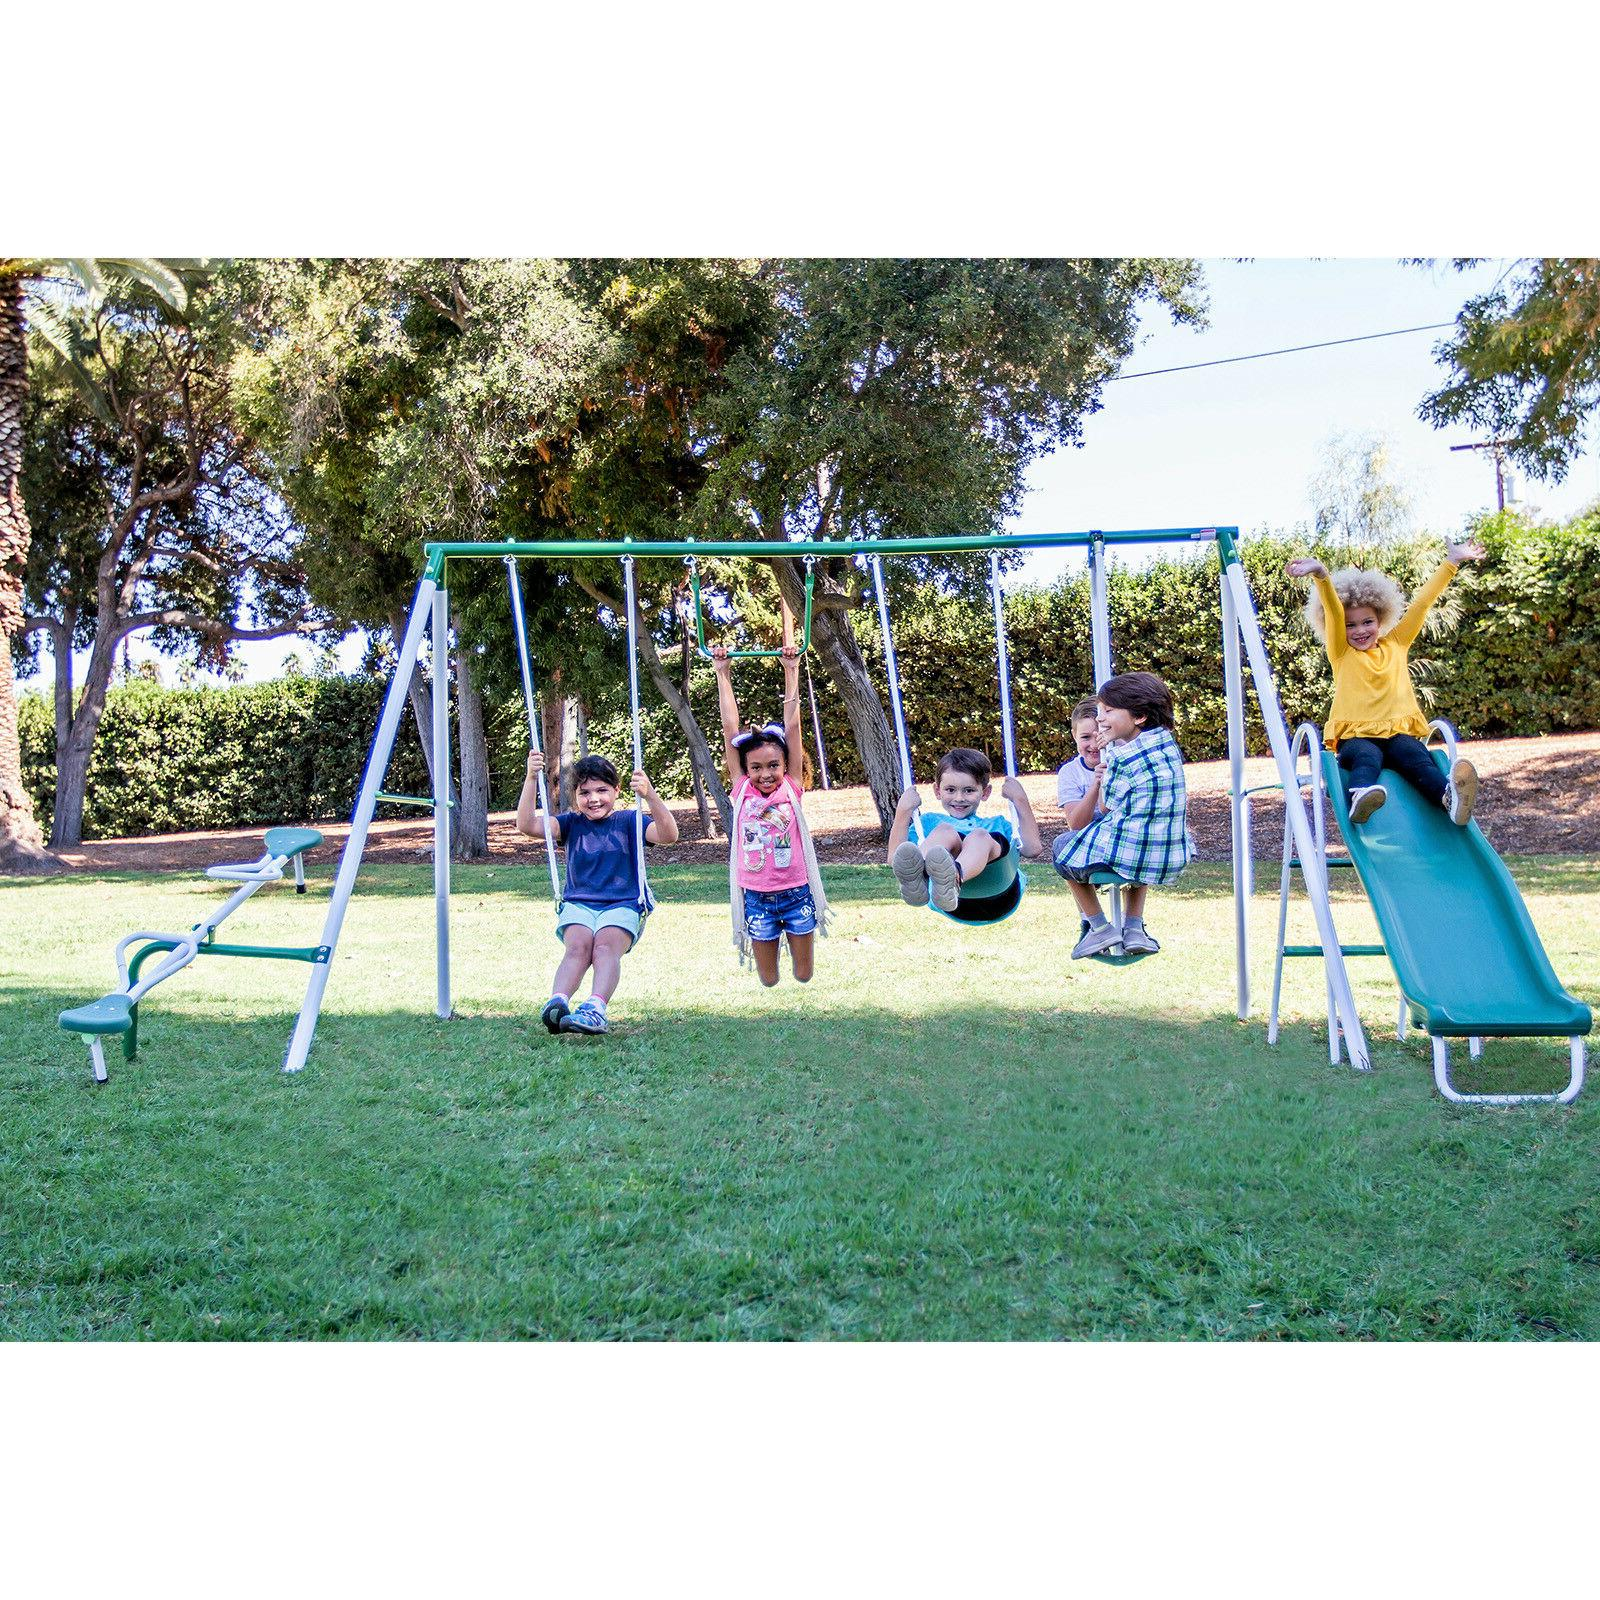 Metal Swing Slide Playground Outdoor Backyard Kid